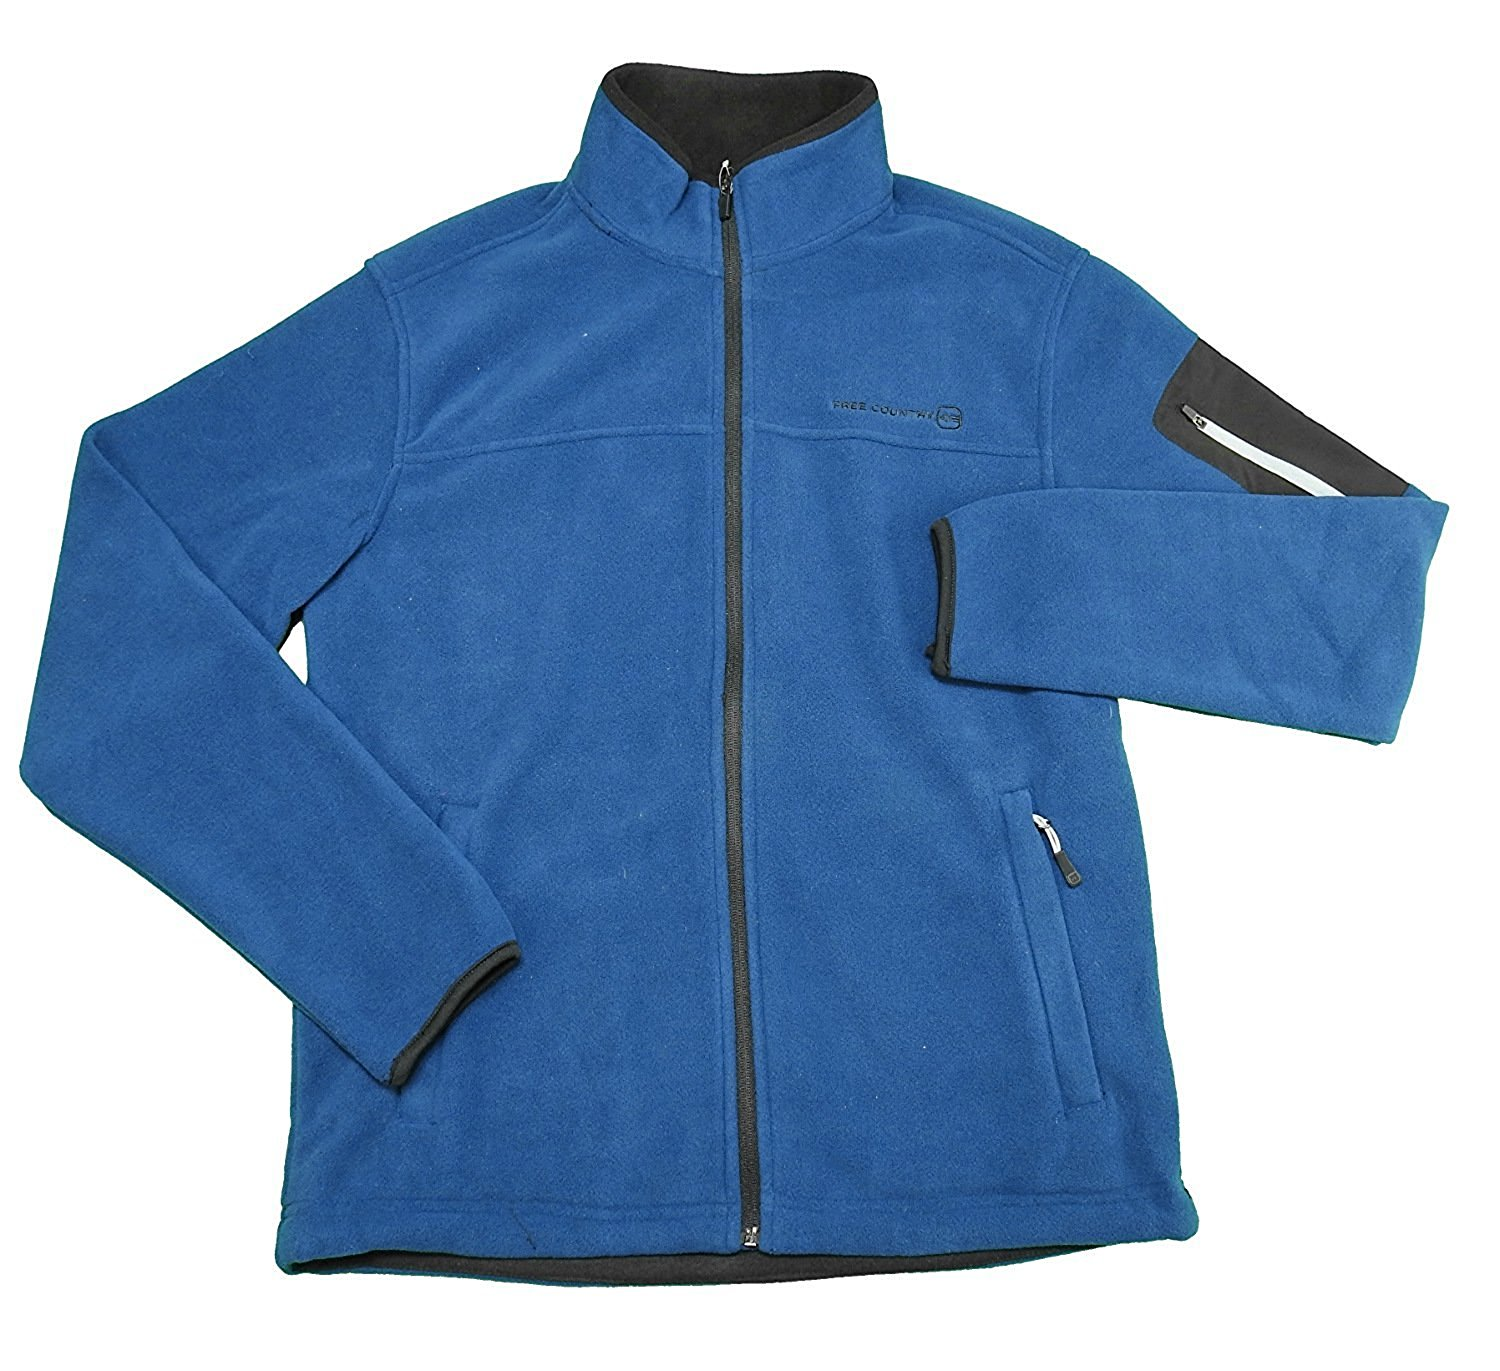 Free Country Mens Size XX-Large Microtech Fleece Jacket, Cold Blue